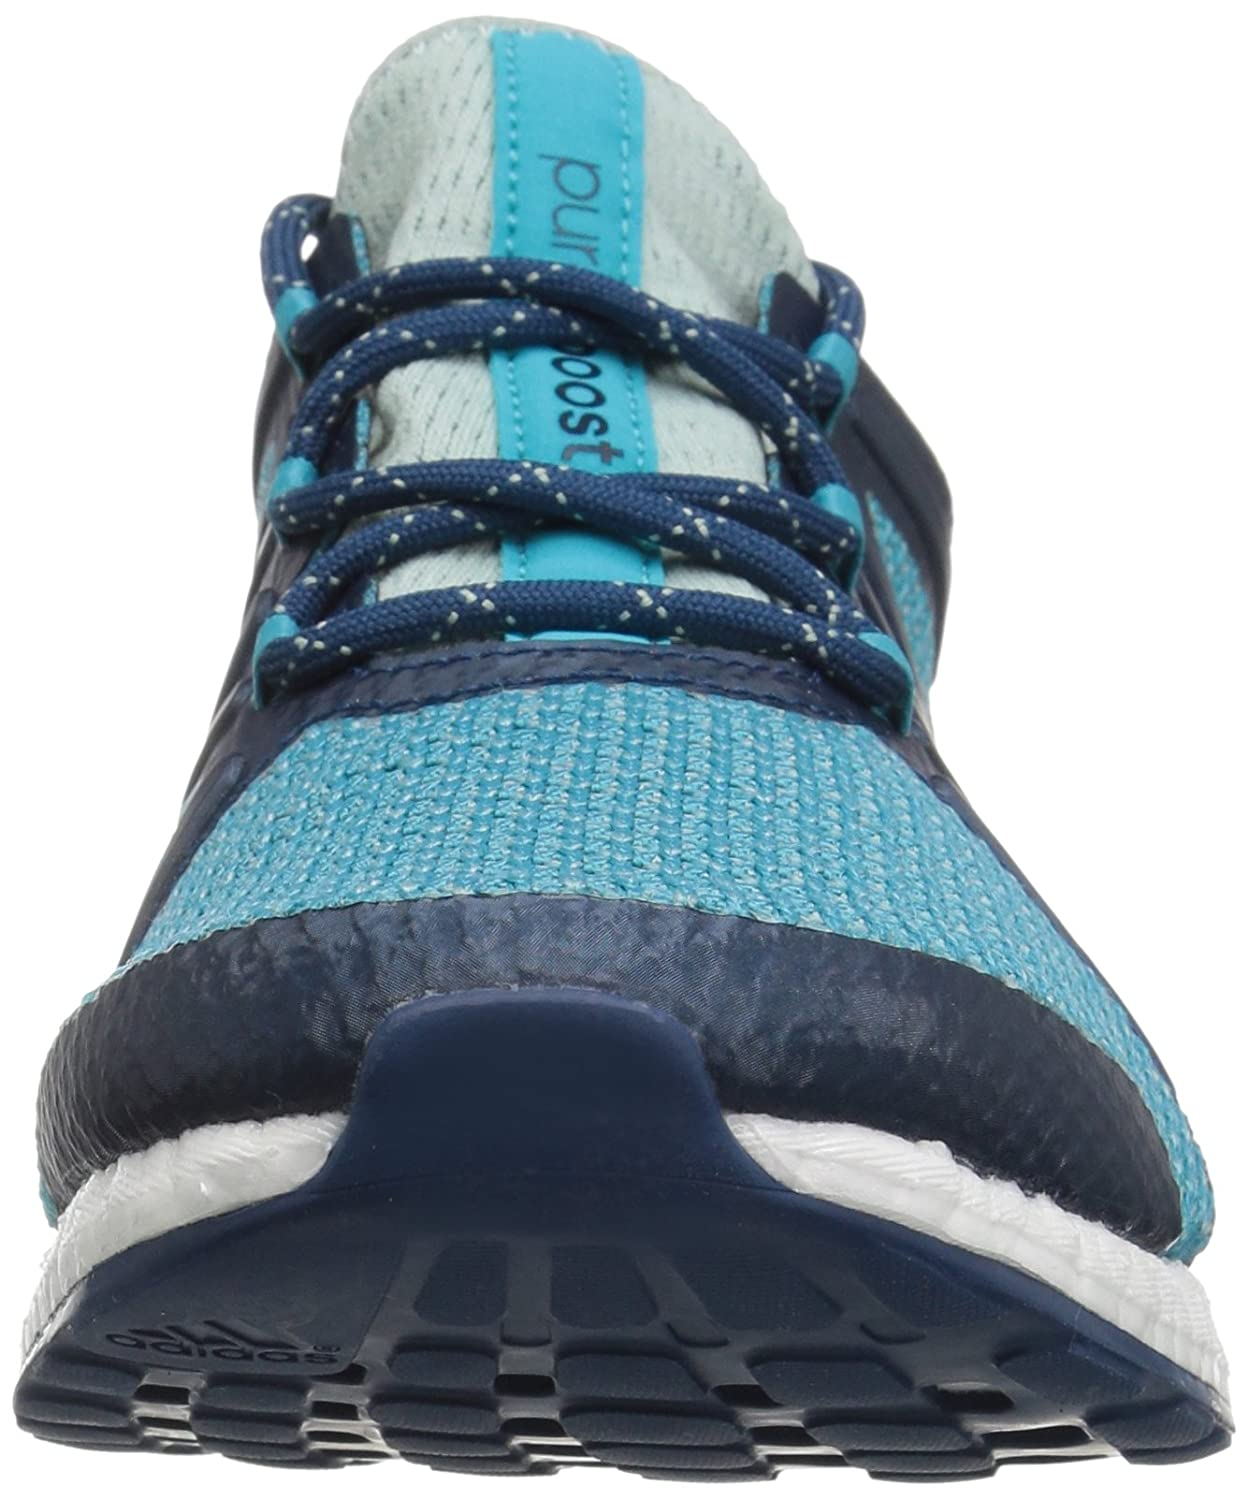 adidas Women's Pureboost Green/Energy Xpose B01NAAJ3KF 9 B(M) US|Tactile Green/Energy Pureboost Blue/Blue Night 6891fb